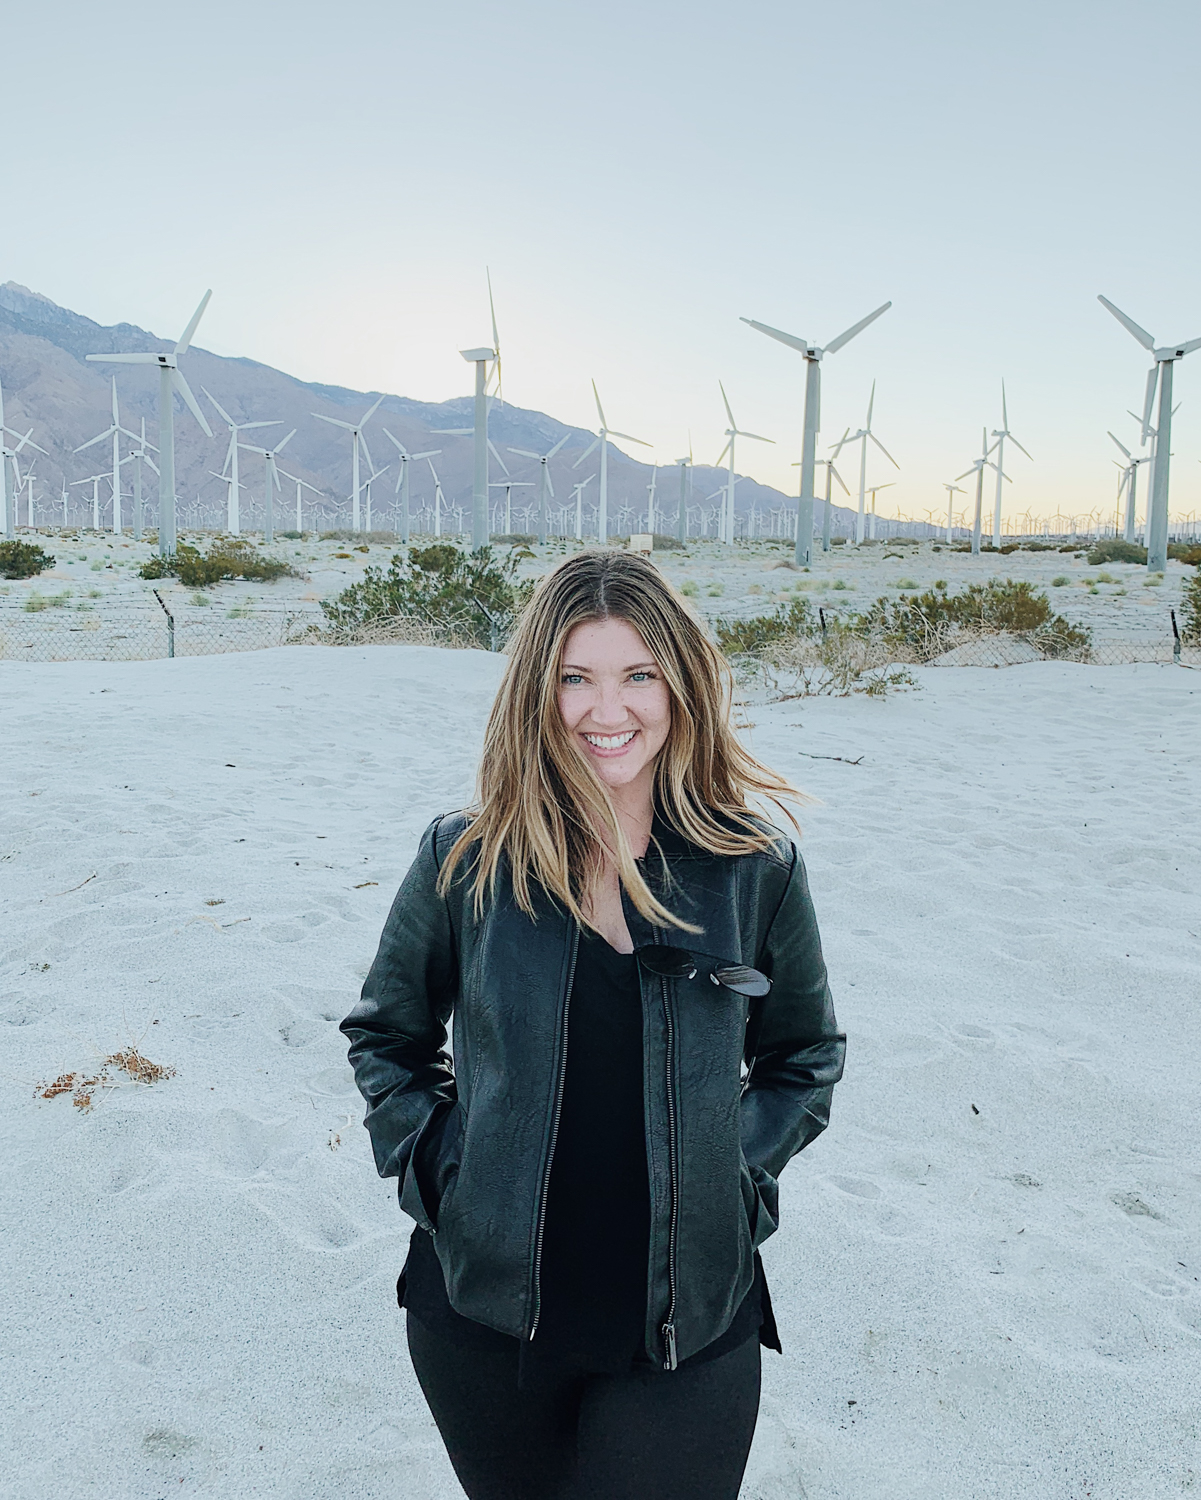 katherine_mendieta_palm_springs_-12.jpg